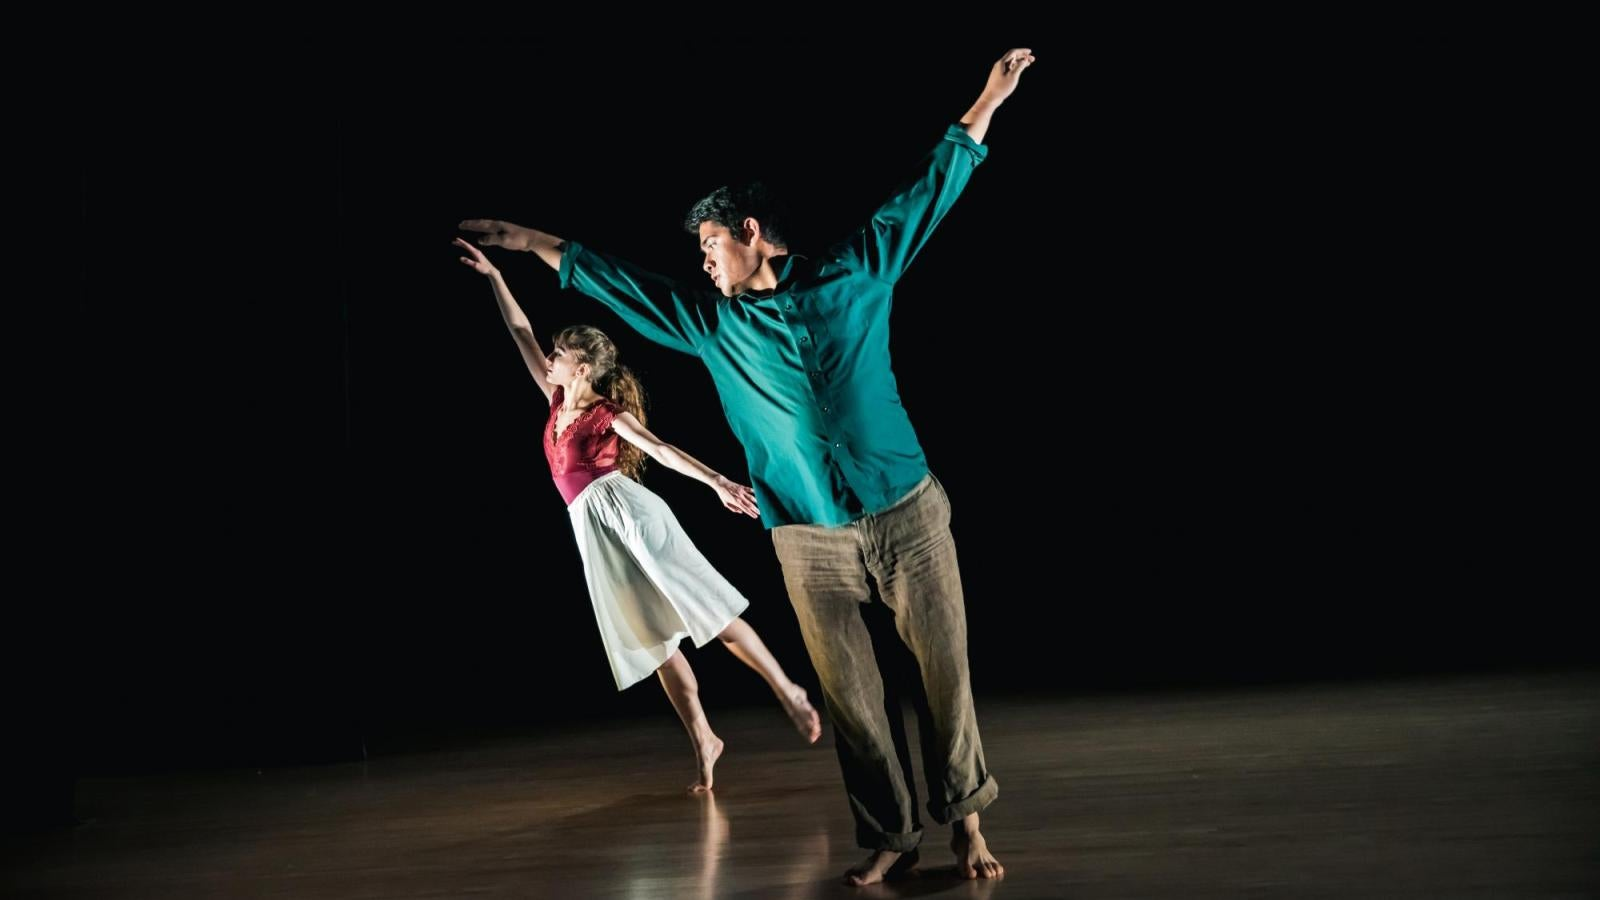 One male dancer leans to the left while a female dancer moves behind him